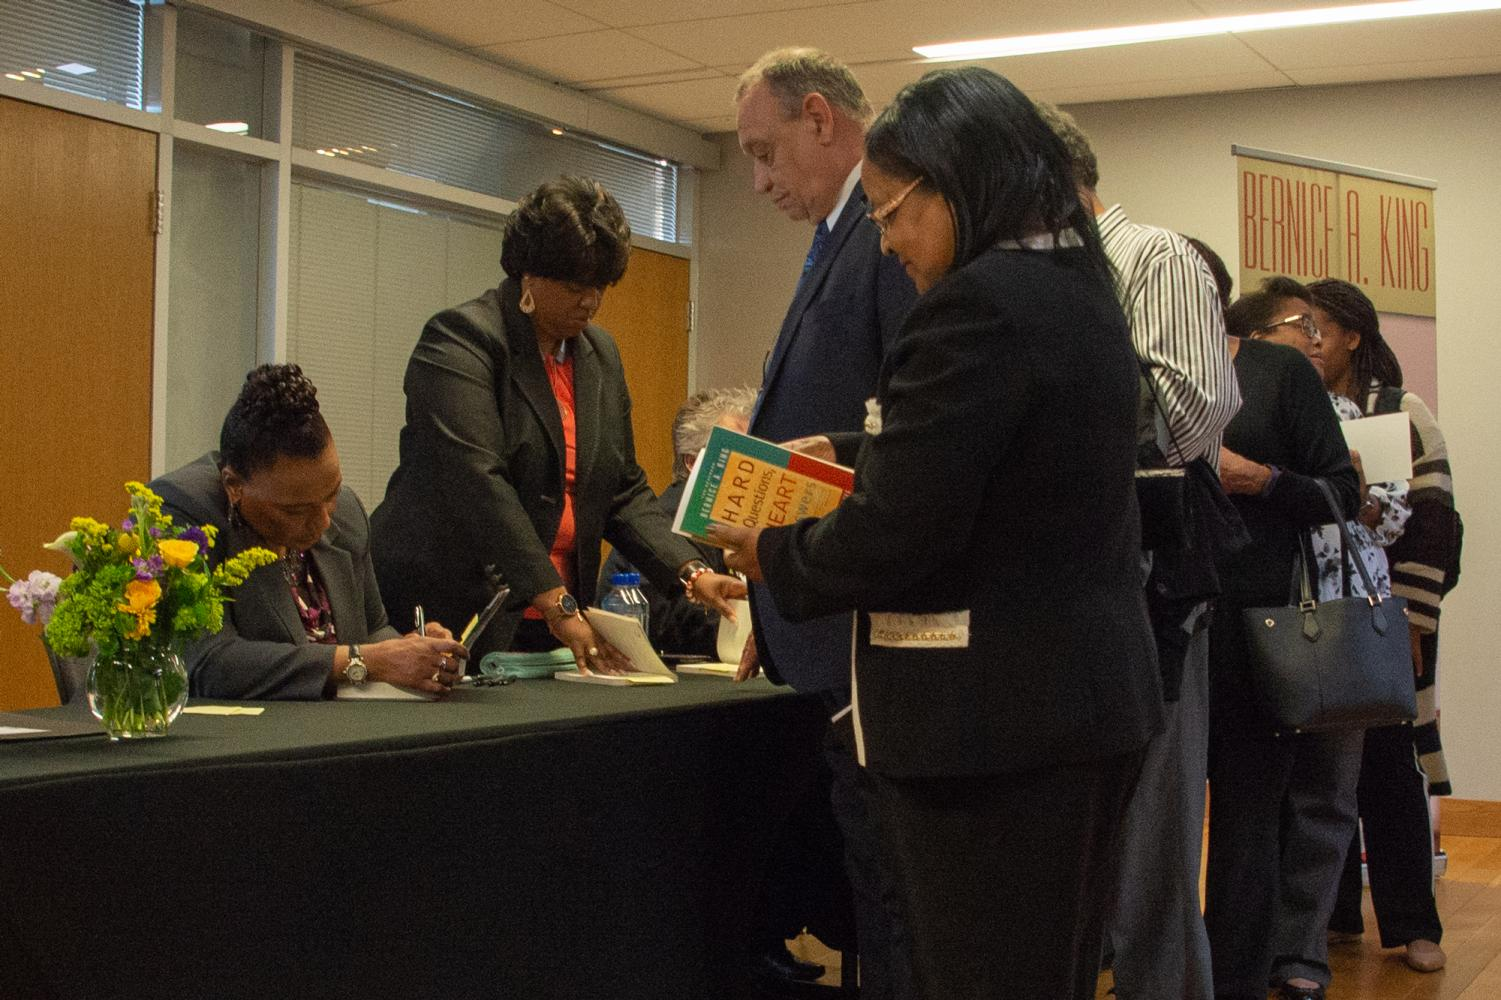 Bernice King made an appearance at App State's Diversity Celebration: World of Excellence on Thursday. King spoke at the event and even offered a book signing. Photo by Lynette Files